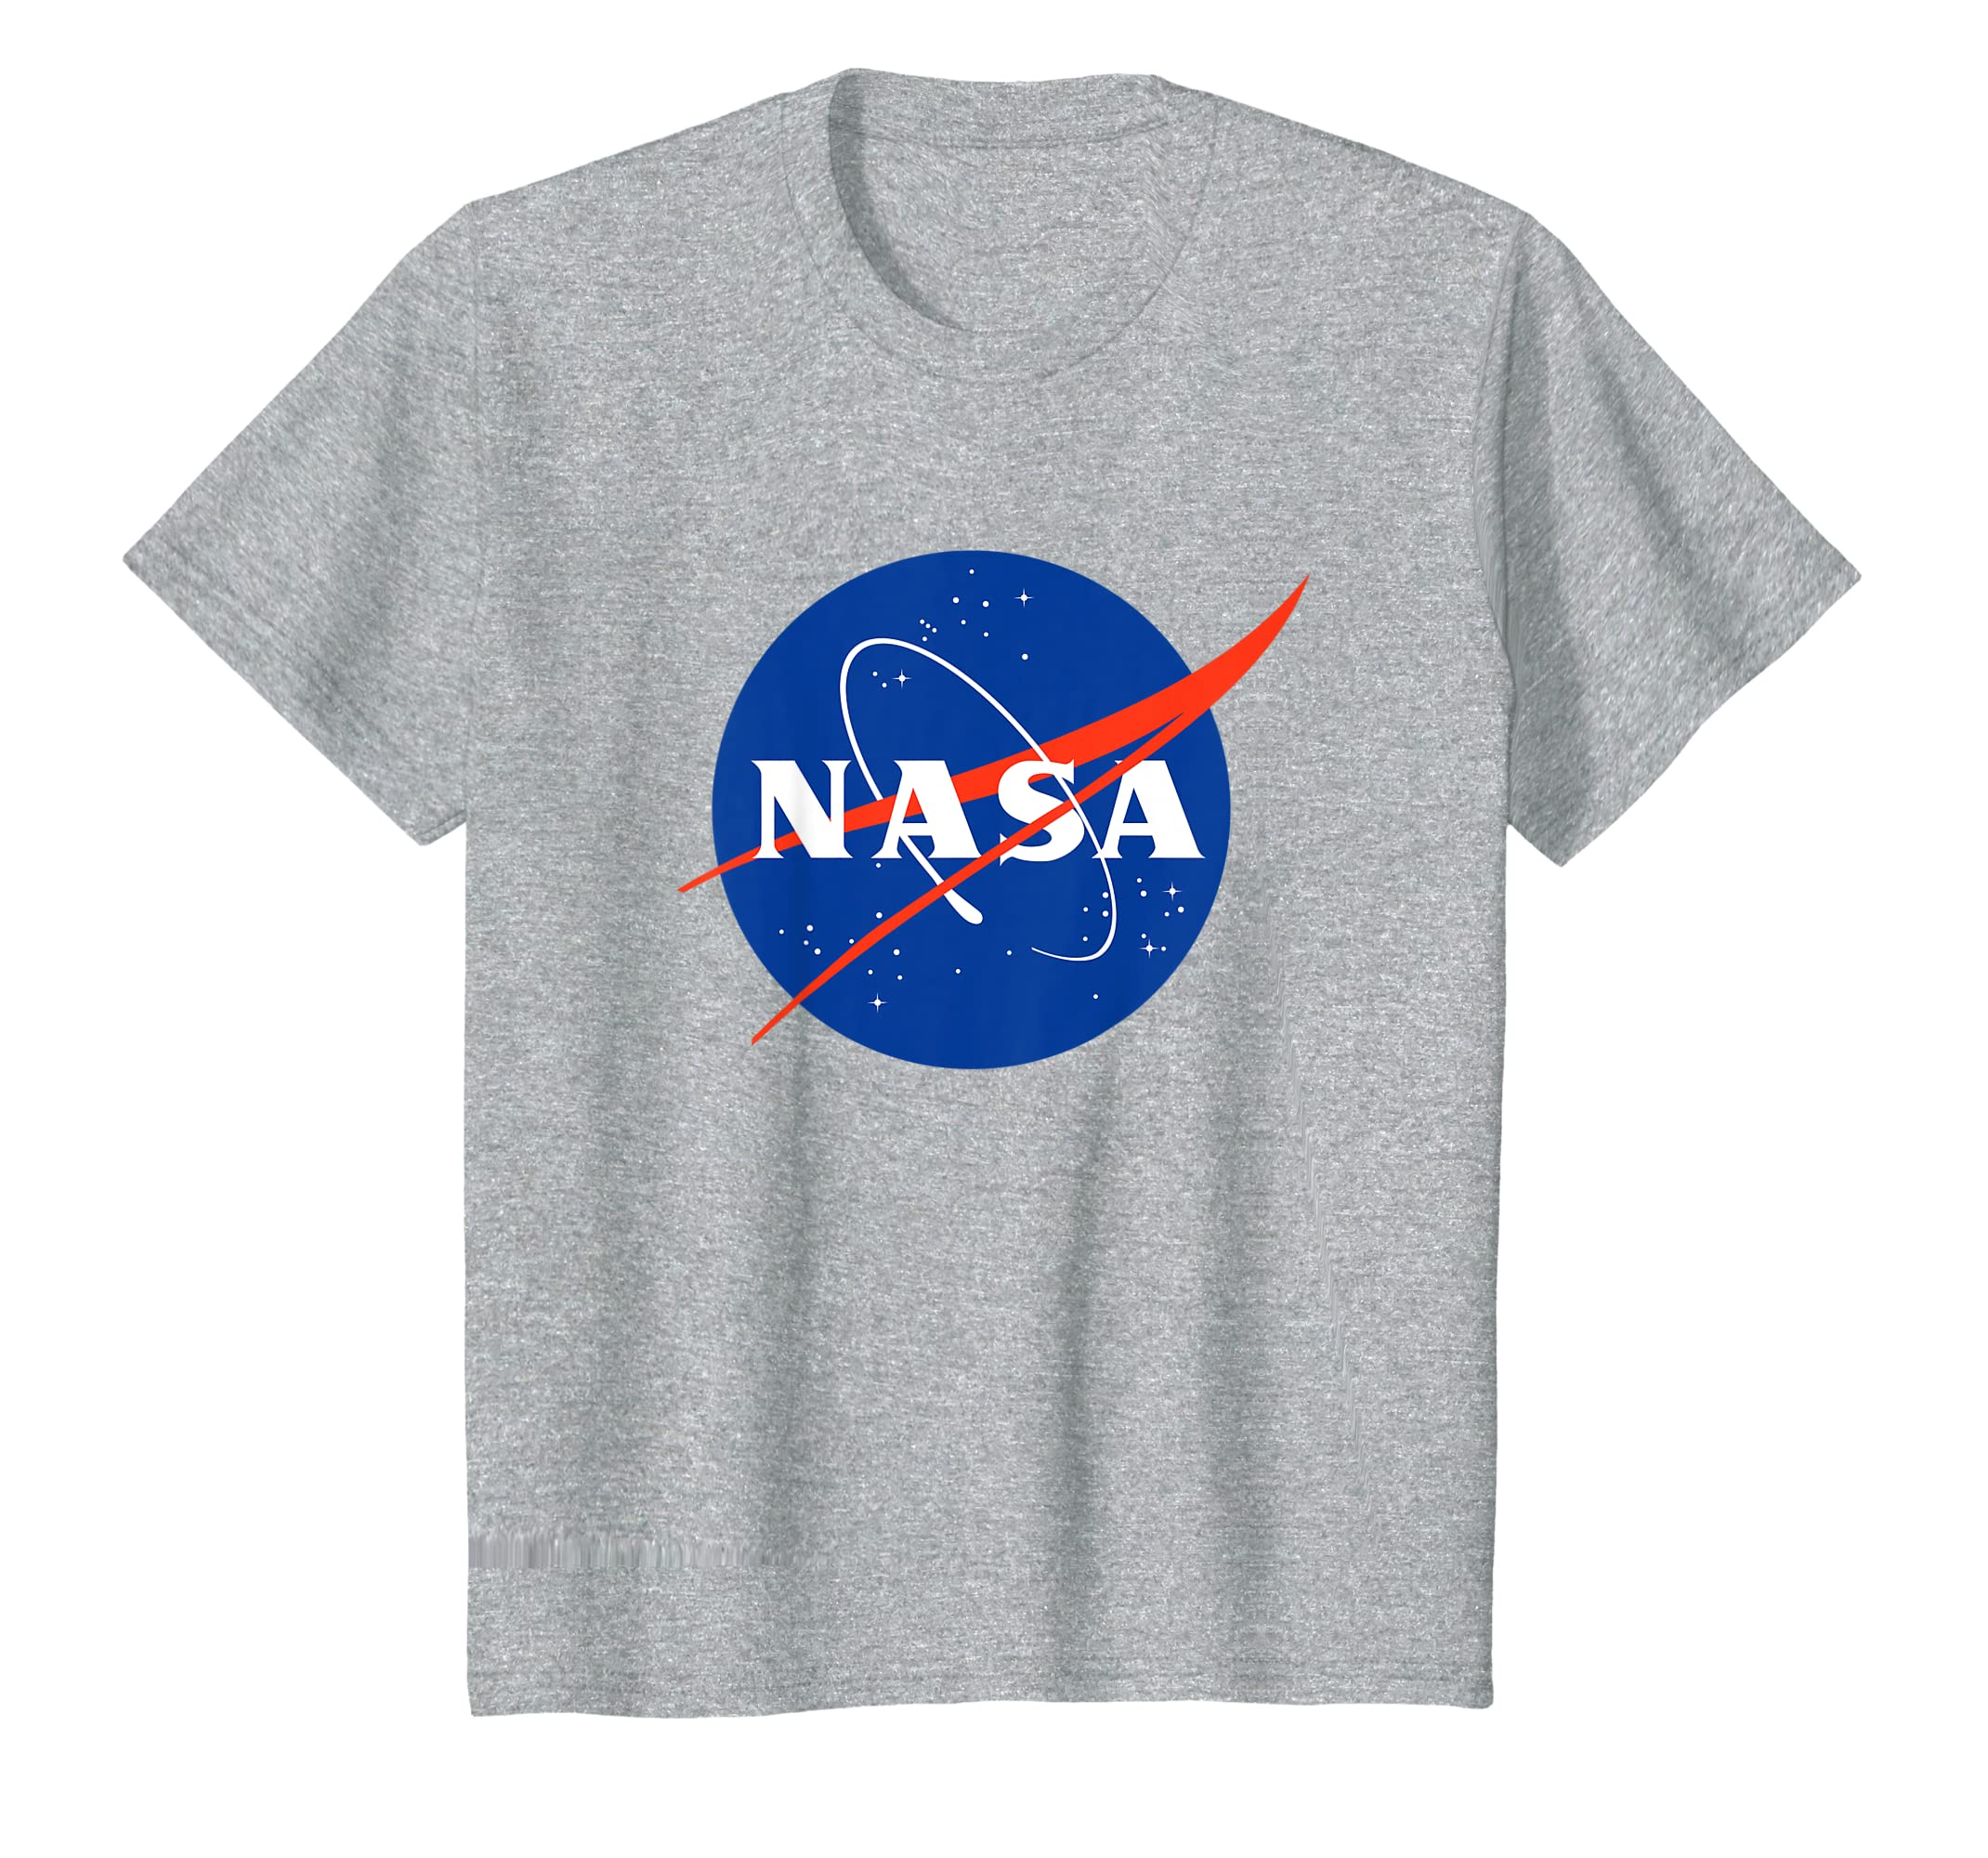 c4f8cd11664 Amazon.com: NASA Approved Officially Licensed Meatball Logo Moon 2024 T- Shirt: Clothing